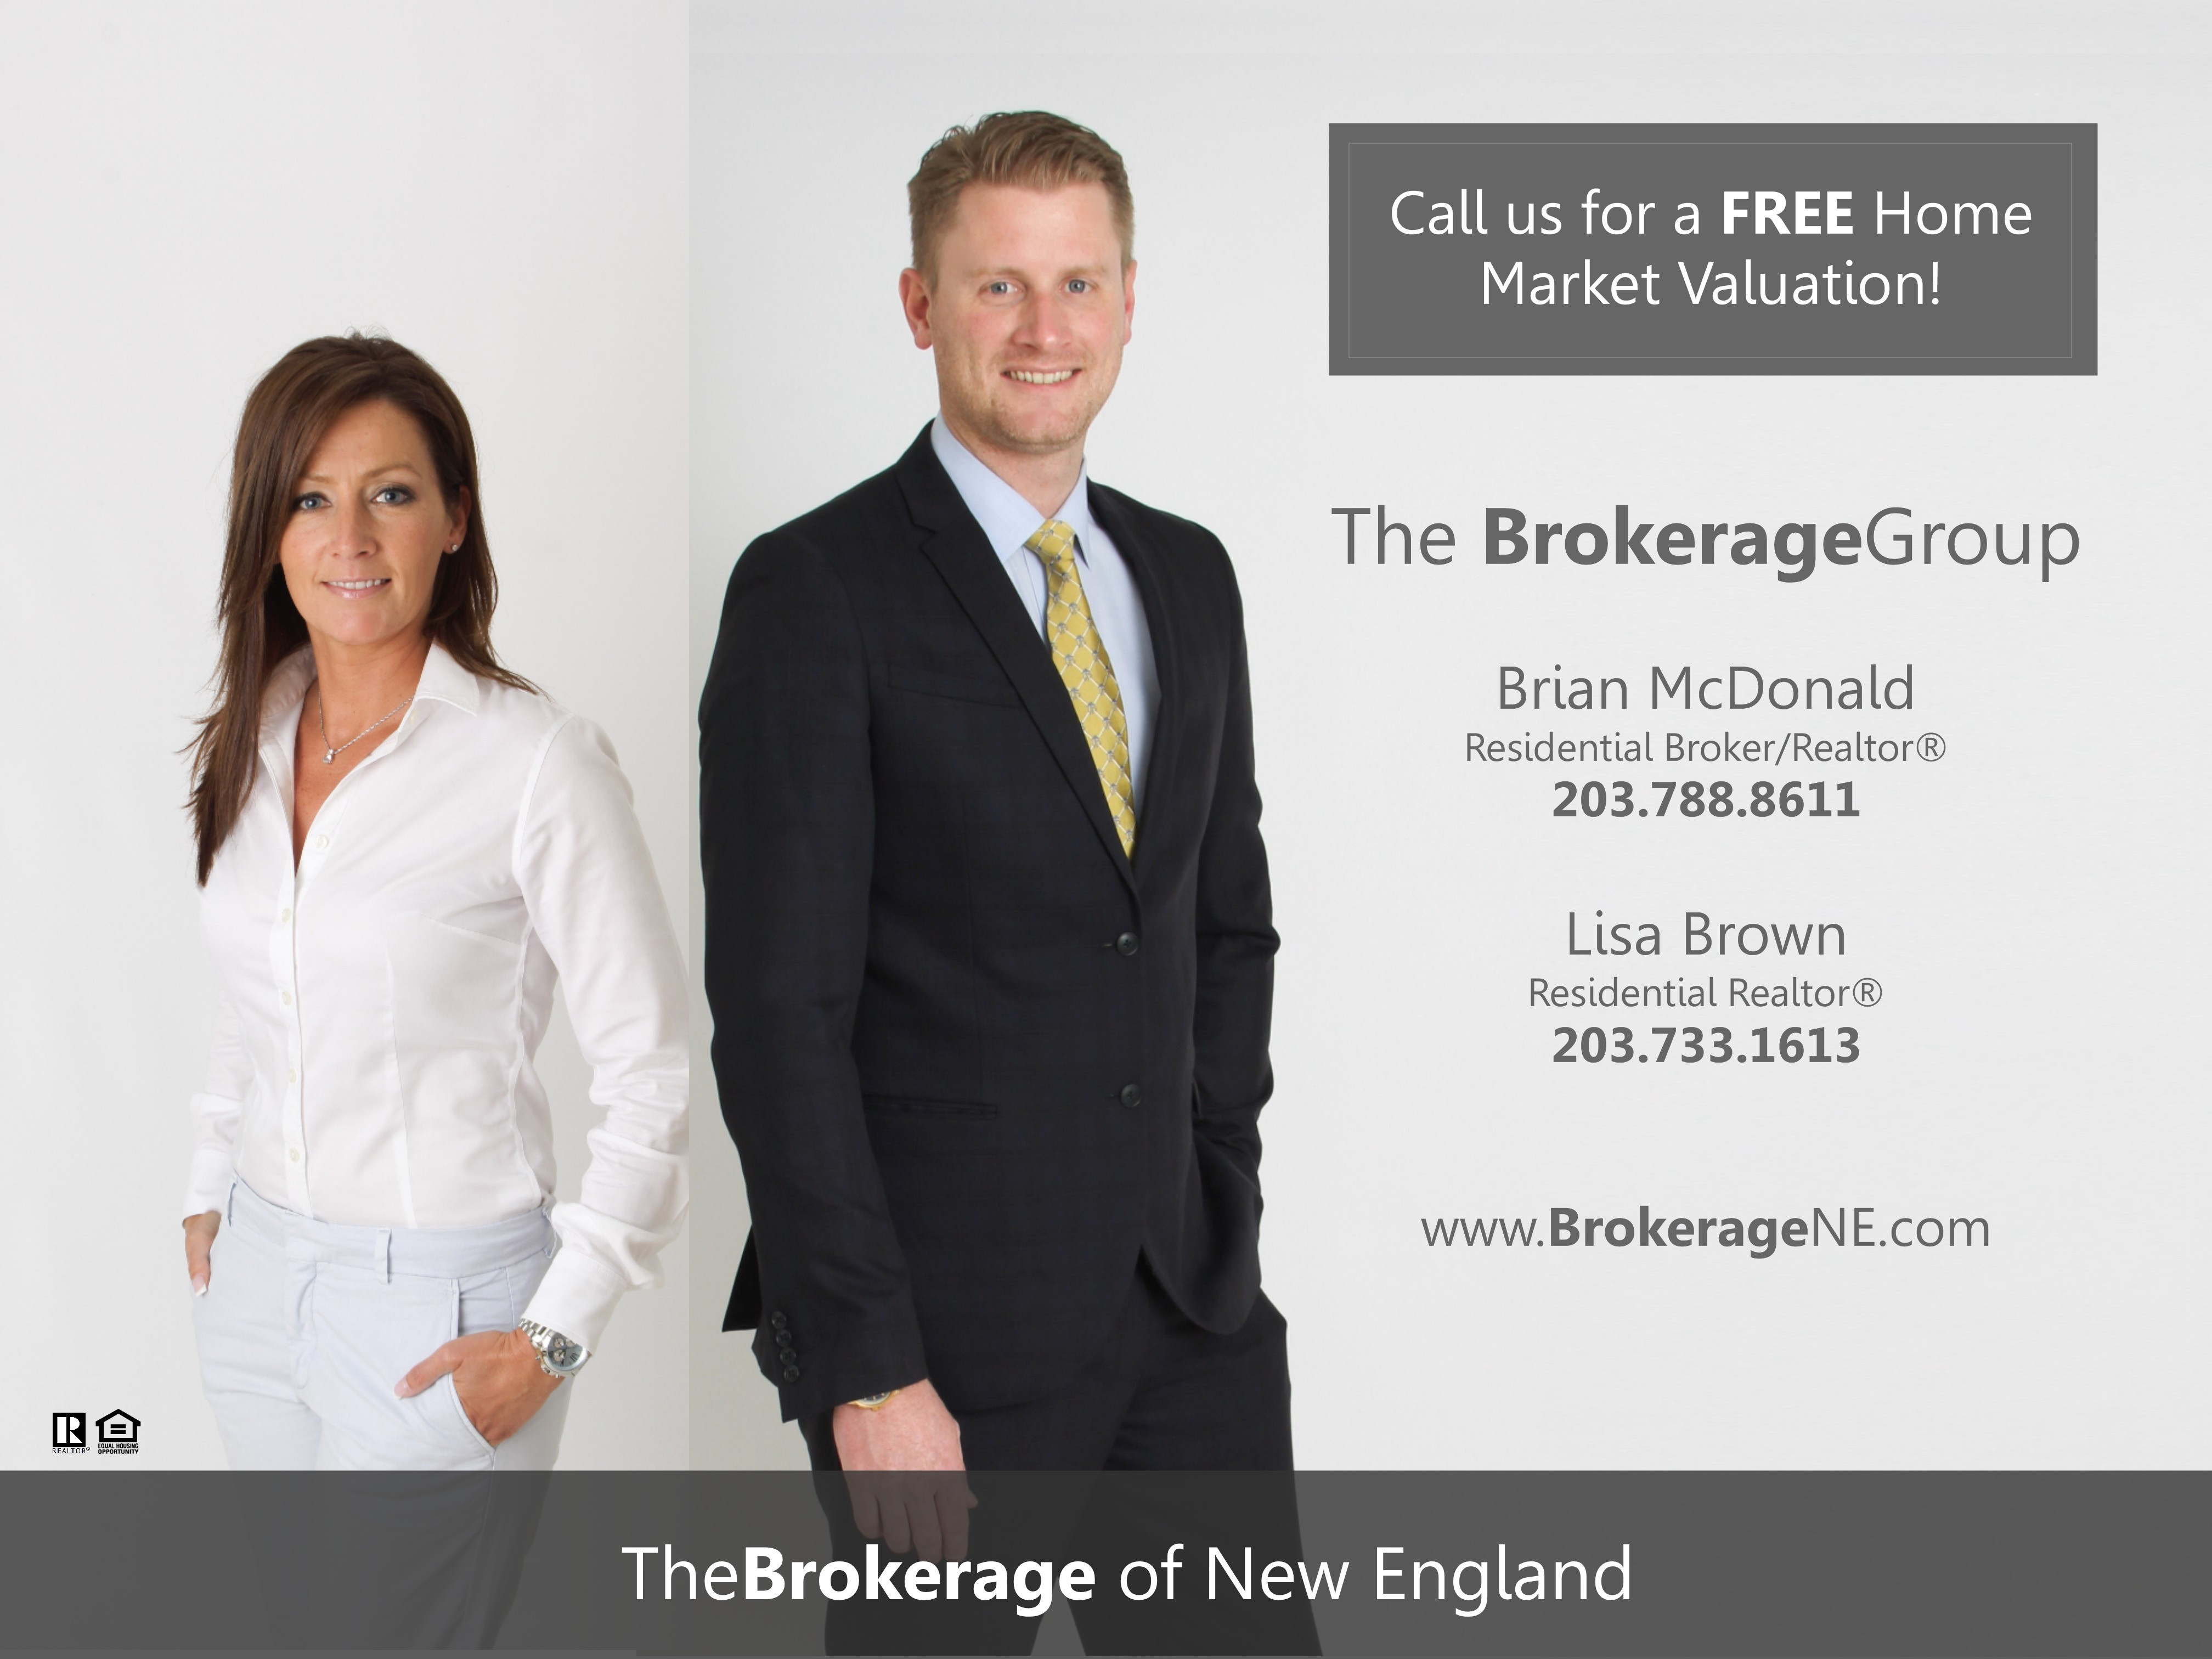 danbury ct real estate agents. top real estate team in fairfield county. the brokerage of new england real estate agency